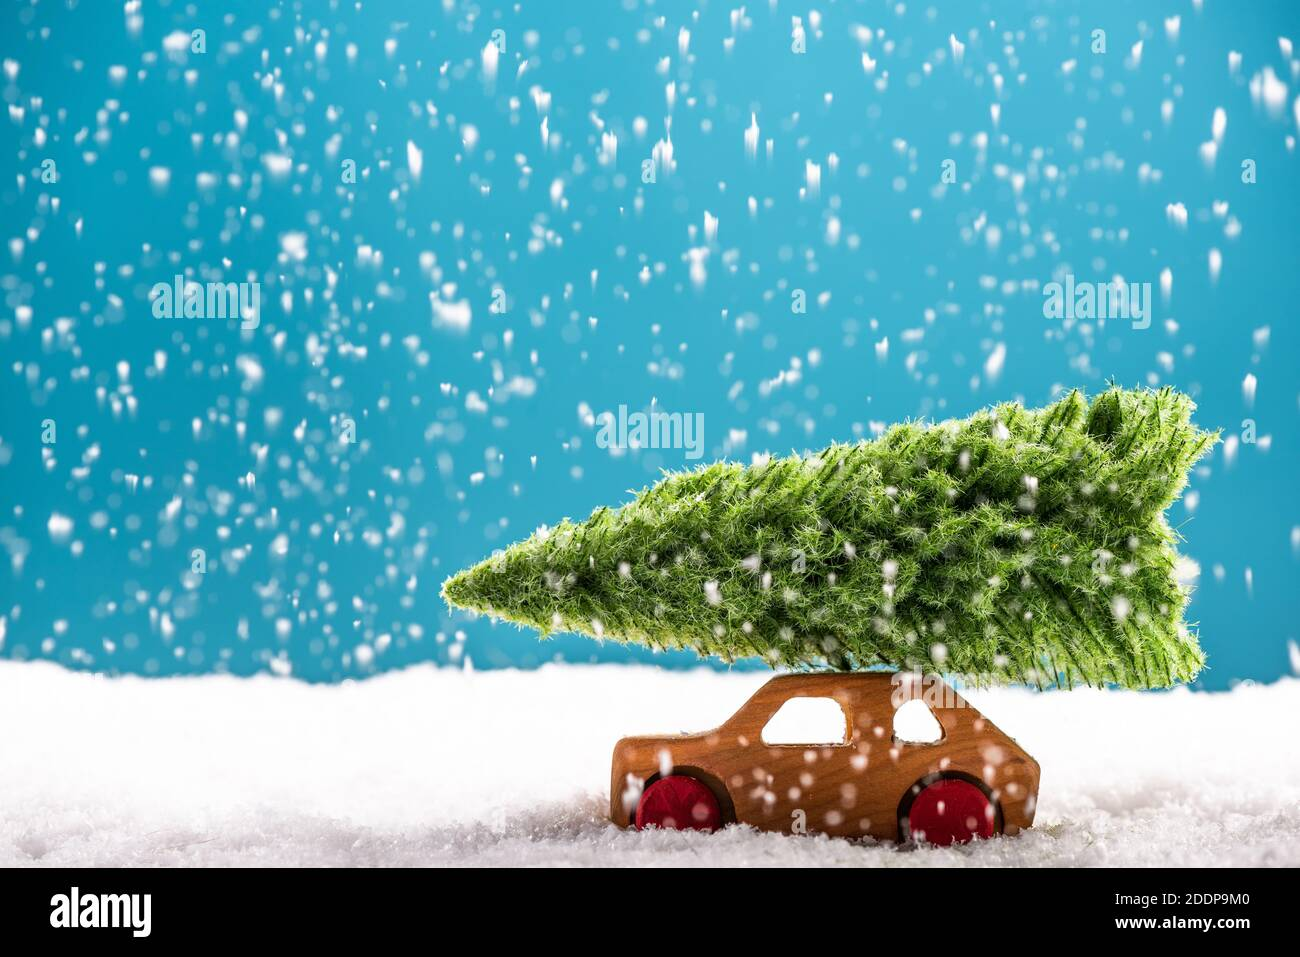 Colorful Christmas Greeting Card Vintage Wooden Toy Car Carry Christmas Tree Stock Photo Alamy